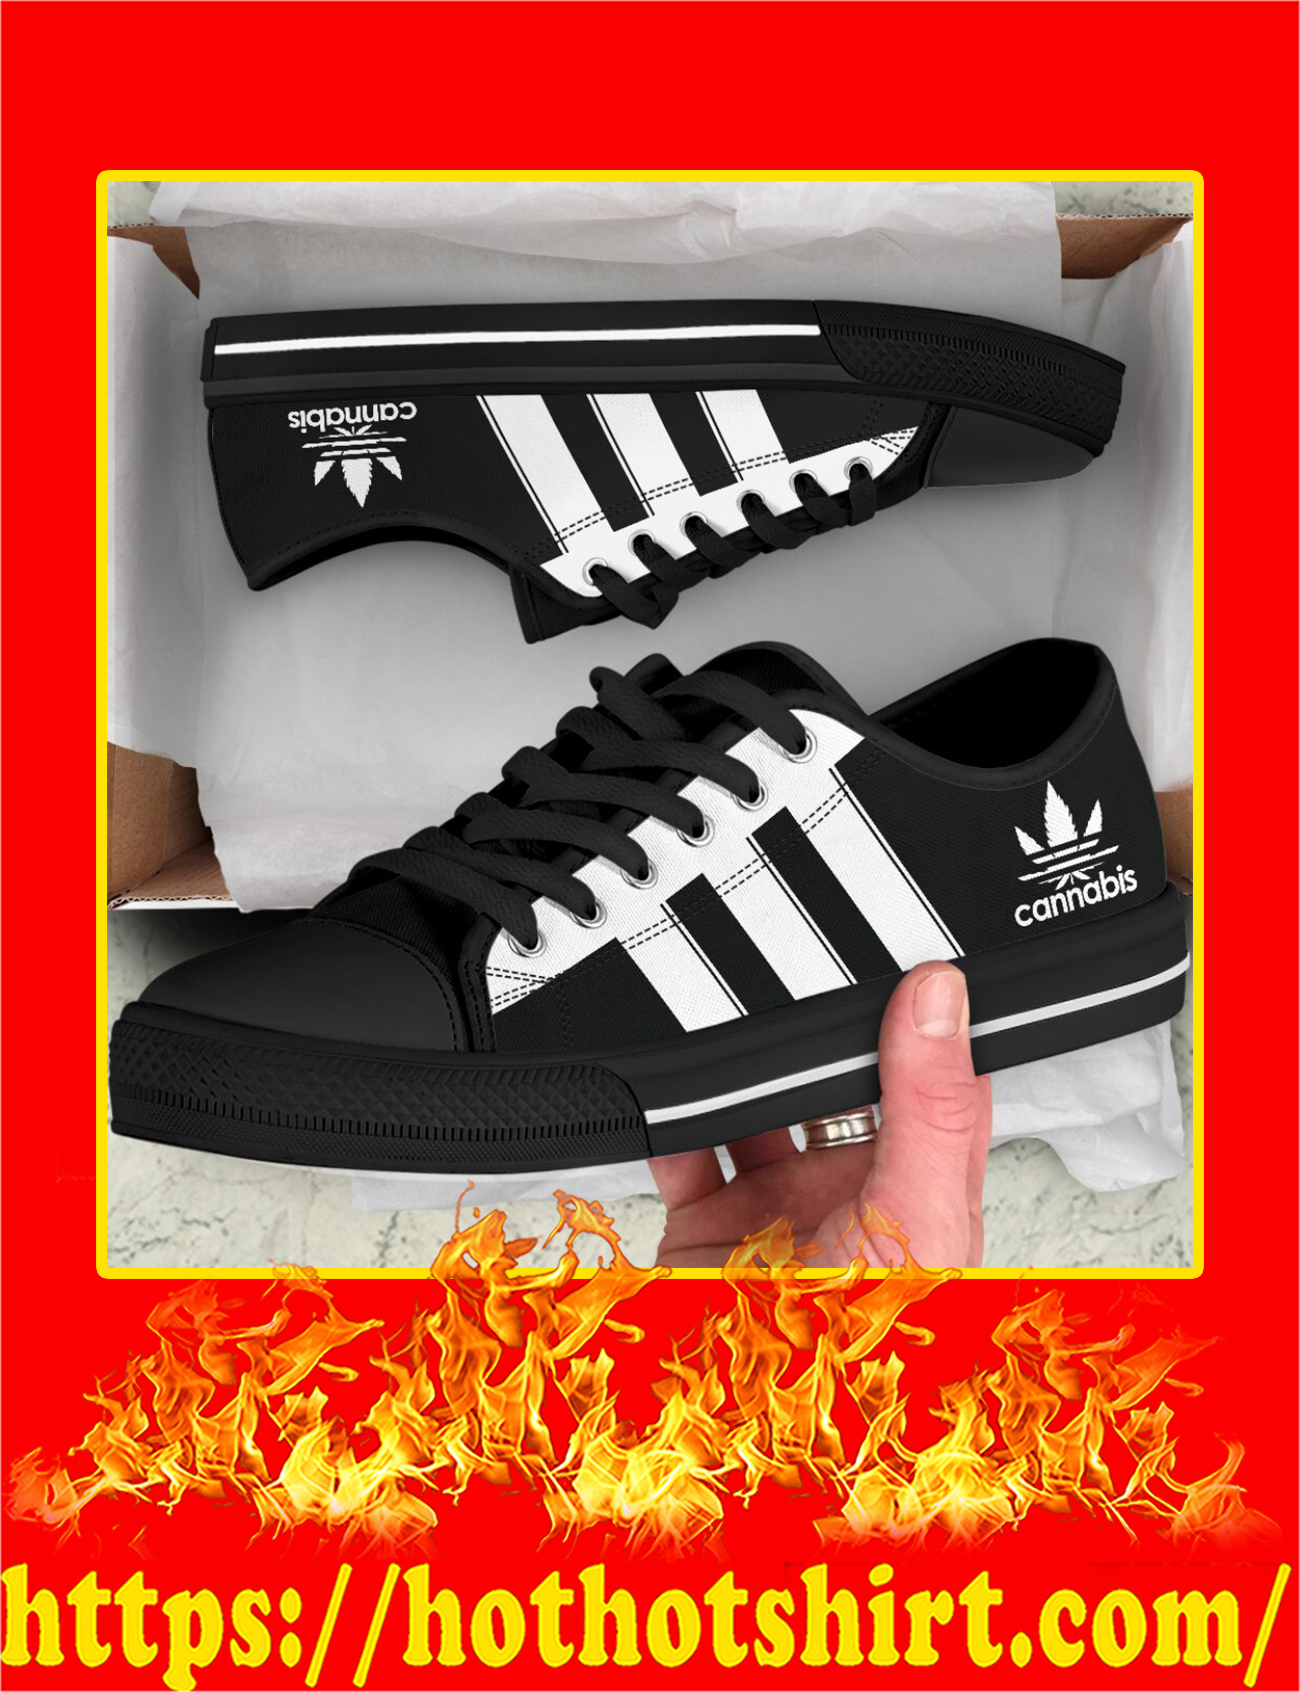 Cannabis Adidas Logo Low Top Shoes - Pic 2